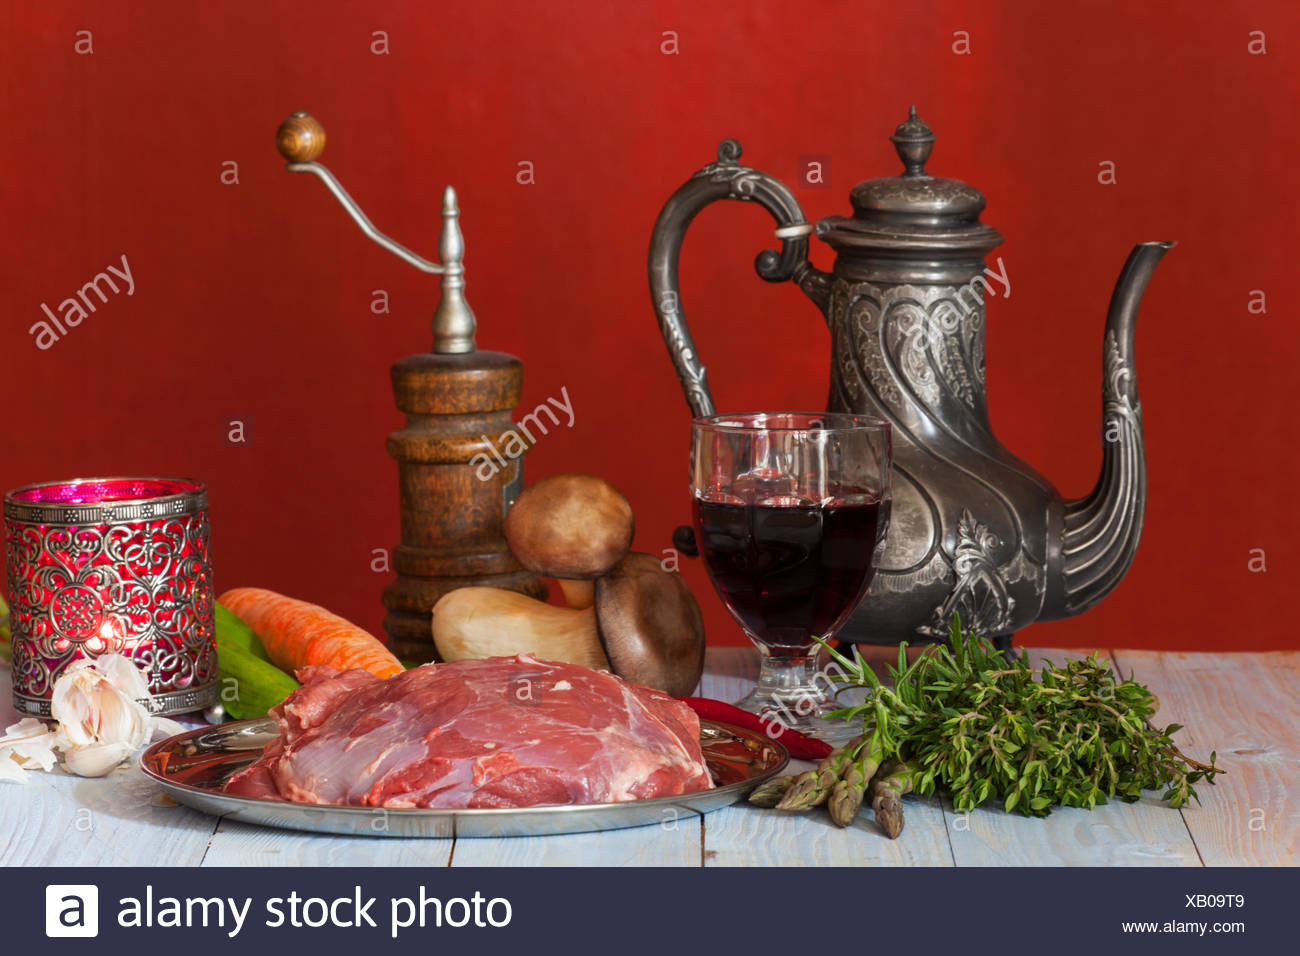 raw lamb meat and vegetables - Stock Image